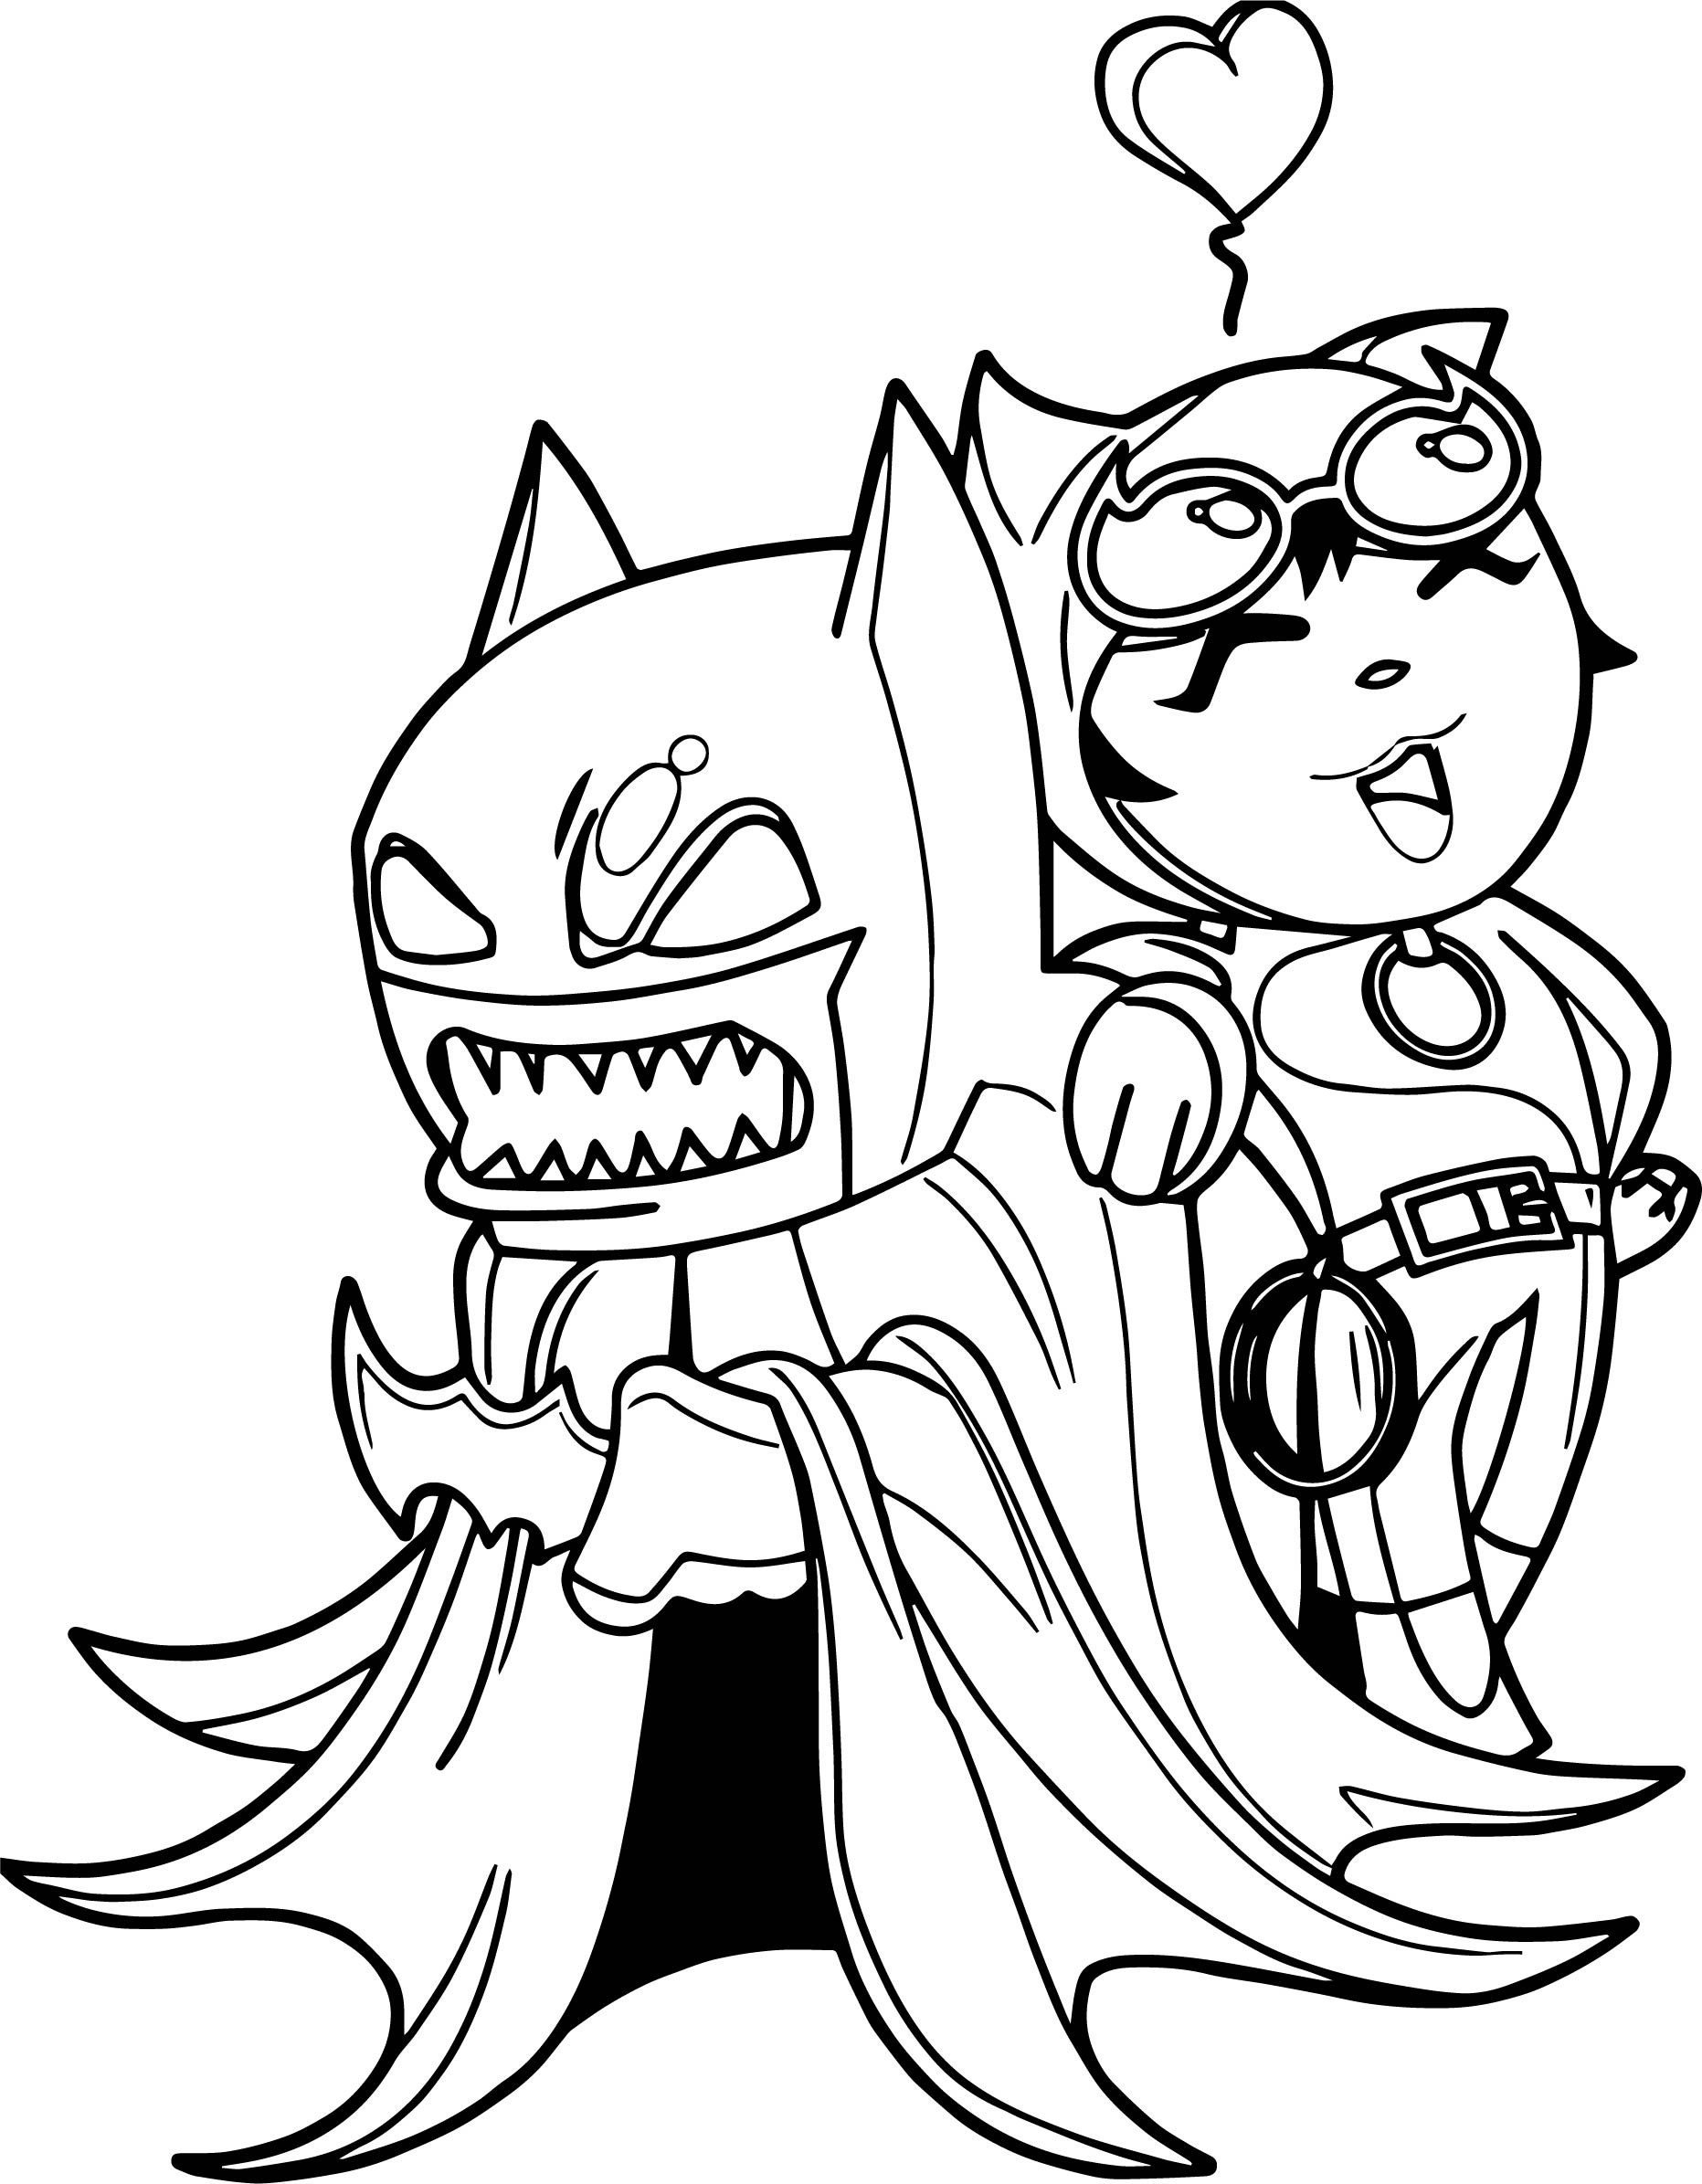 Nice Chibi Batman Coloring Pages Best Chibi Batman Cartoon Coloring Download Of Batman  Coloring Pages Printable Printable